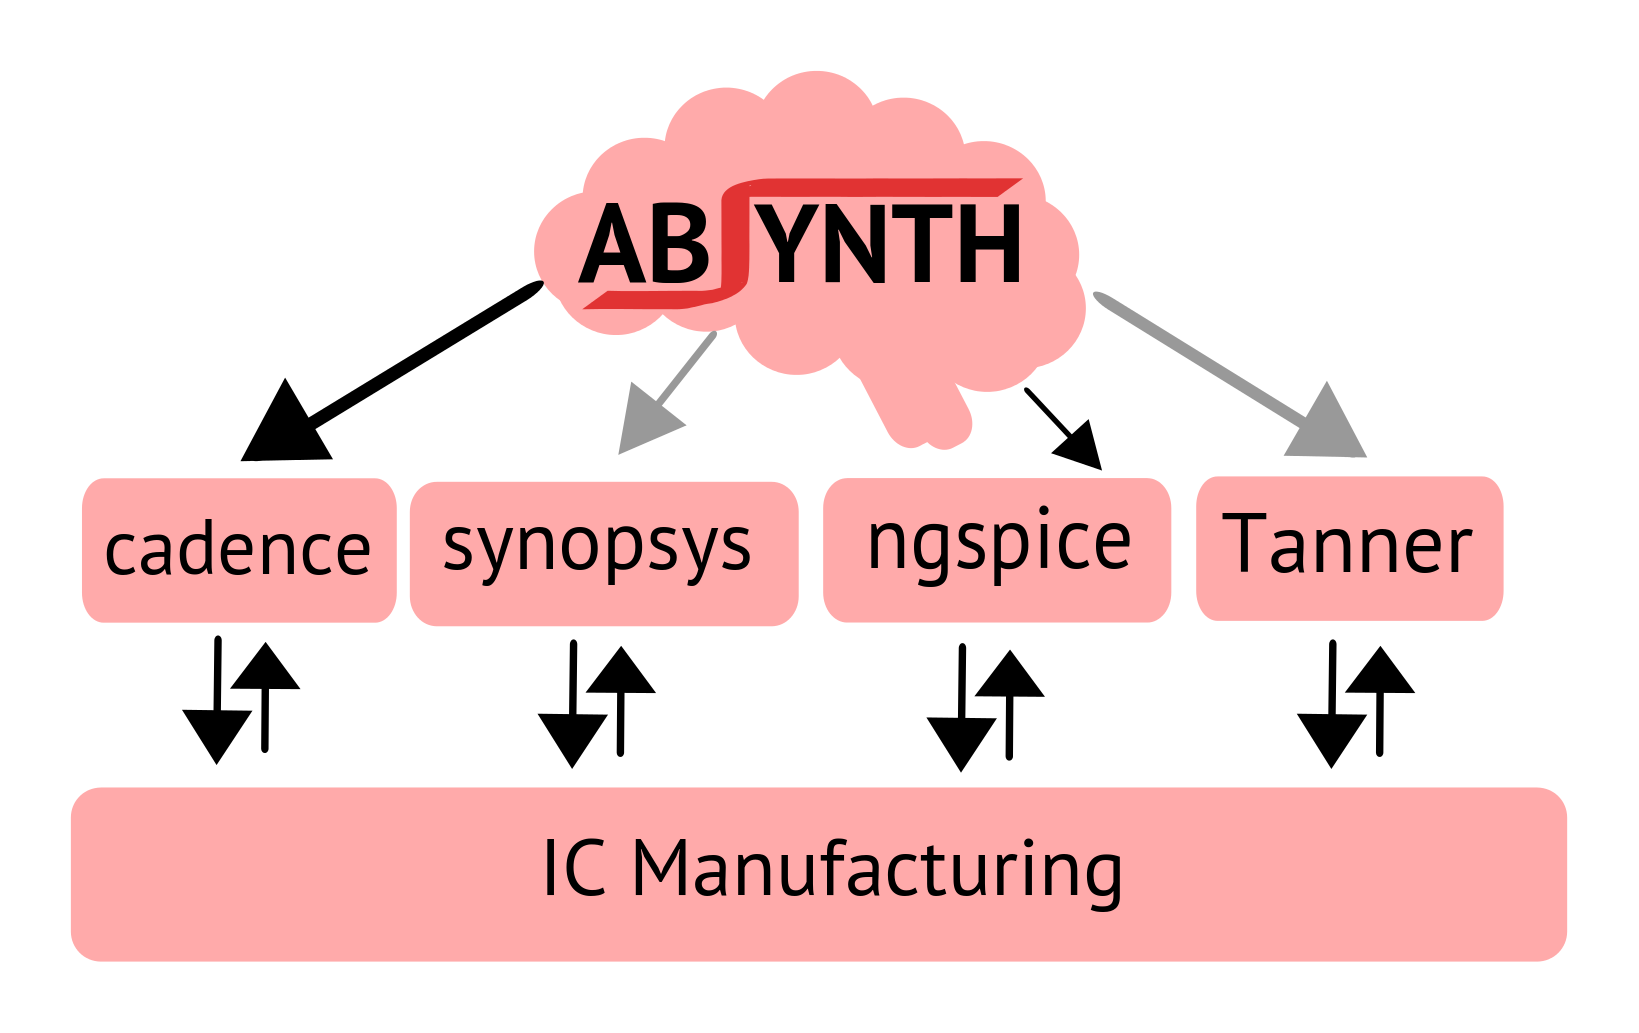 Institute Of Integrated Sensory Systems Absynth Analog Circuit Electronics And Automations Working With The Comparator Goal This Work Is To Provide As An Add On Tool Which Works Various Commercial Open Source Tools Providing Intelligence Better